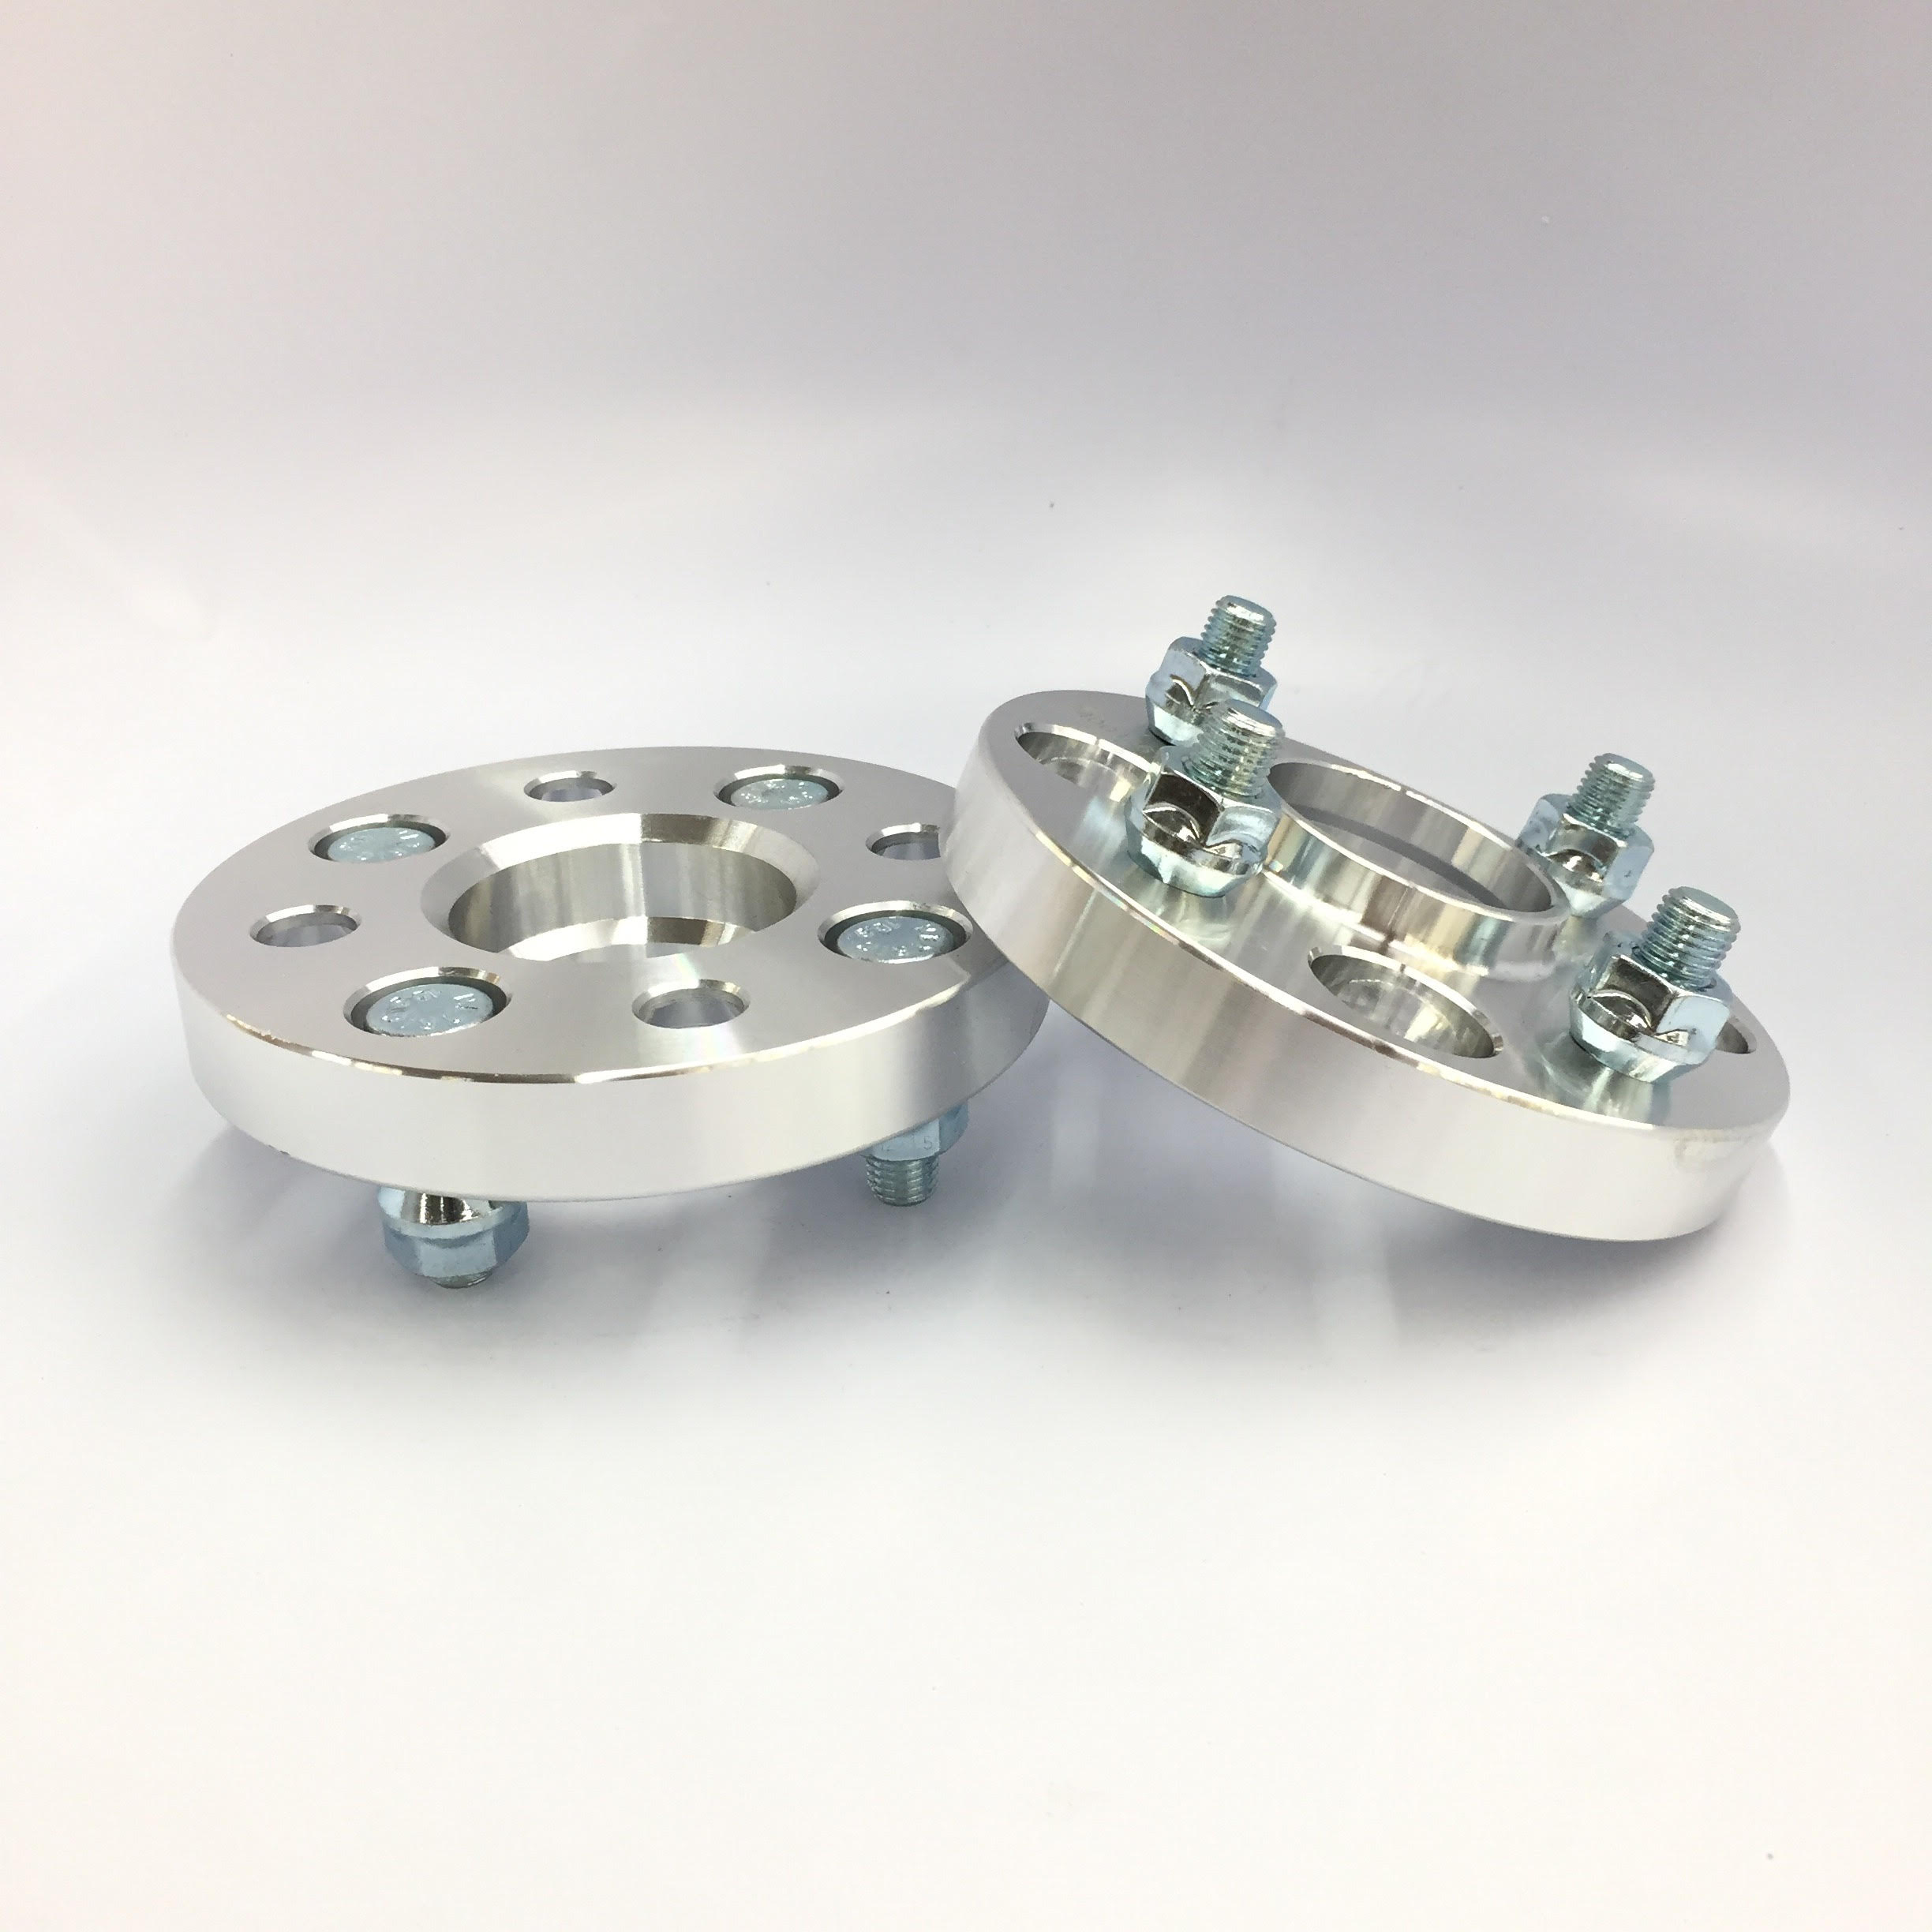 2X HUB CENTRIC WHEEL SPACERS ¦ 4X4.5 (4X114.3) ¦ 12X1.5 ¦ 60.1 CB¦ 25MM THICK